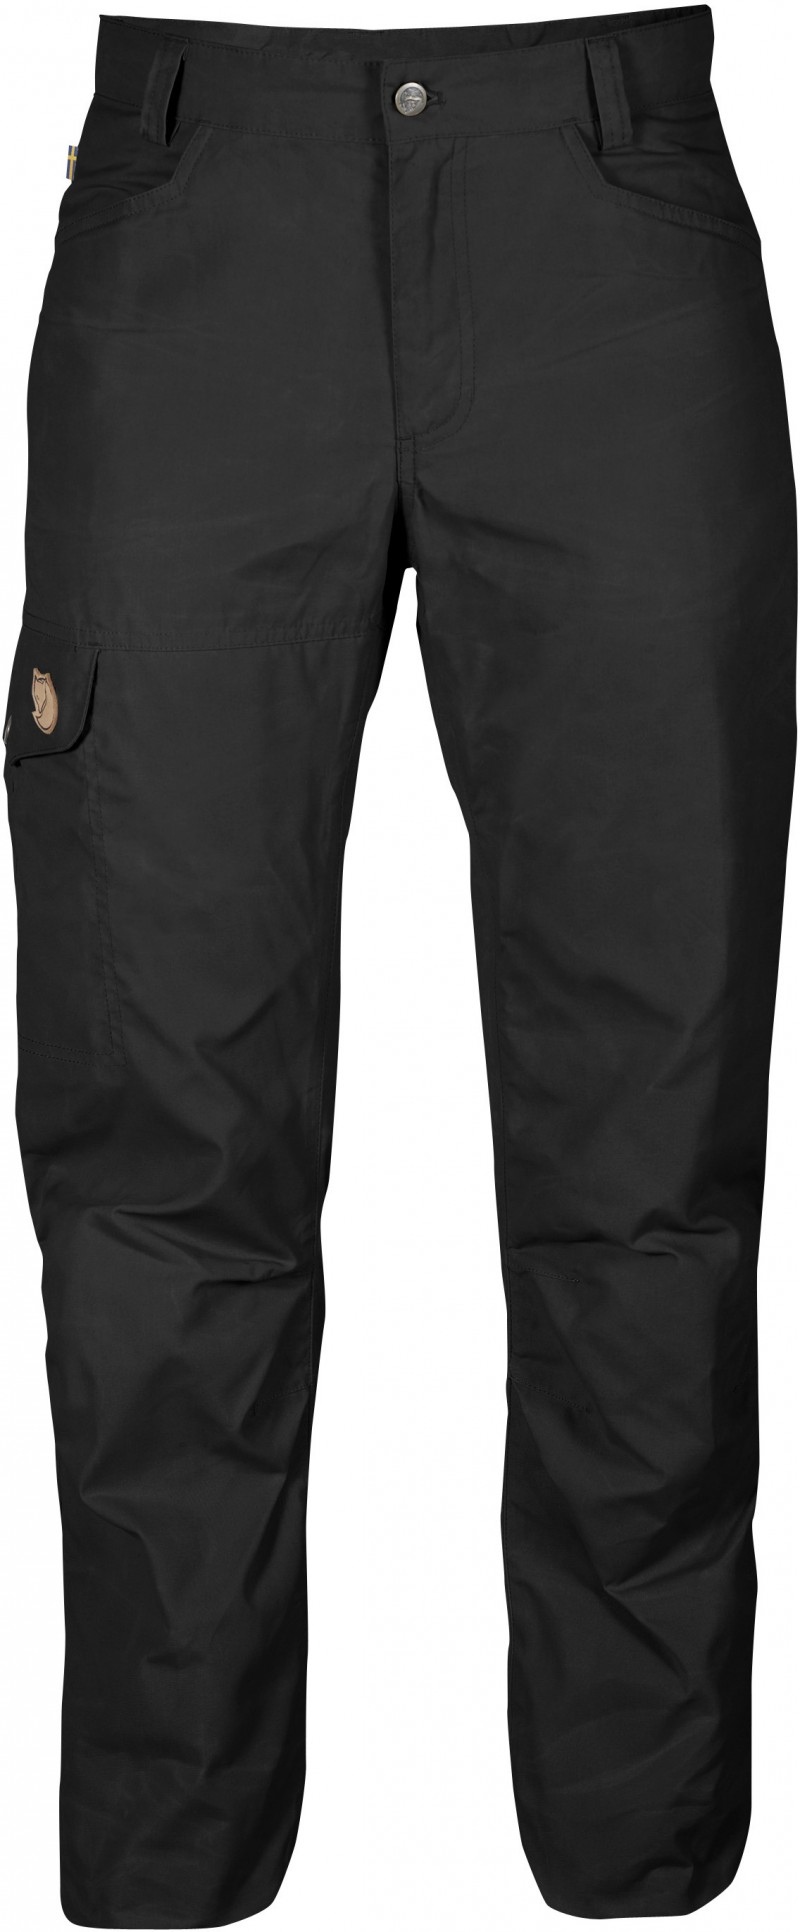 FjallRaven Sandra Trousers Dark Grey-30